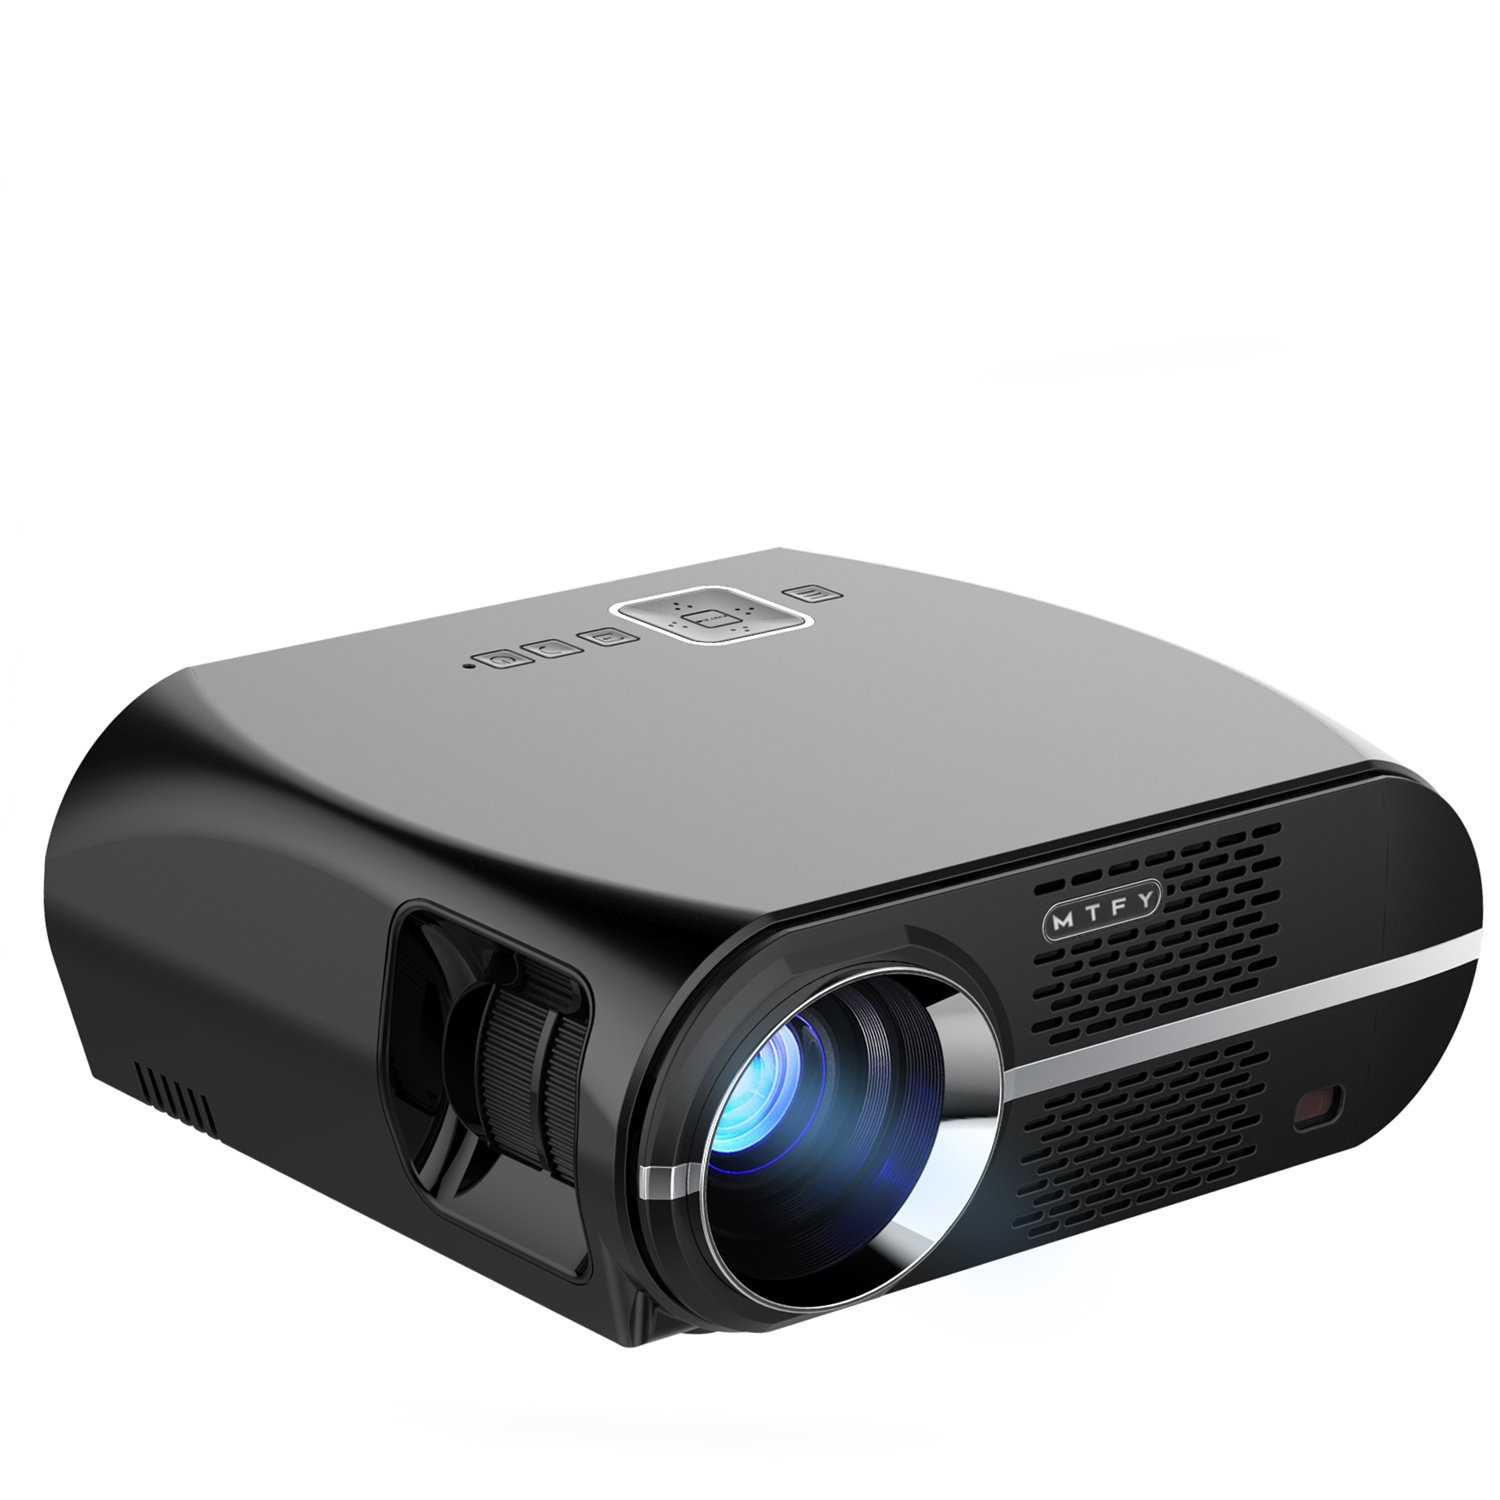 GP100 Video Projector,3500 Lumens LCD 1080P Full-HD LED Portable Multimedia Home Theater Projectors for Movie, TVs, Laptops, Games,DVD,PC,Laptop Support HDMI, USB, VGA, AV by MTFY